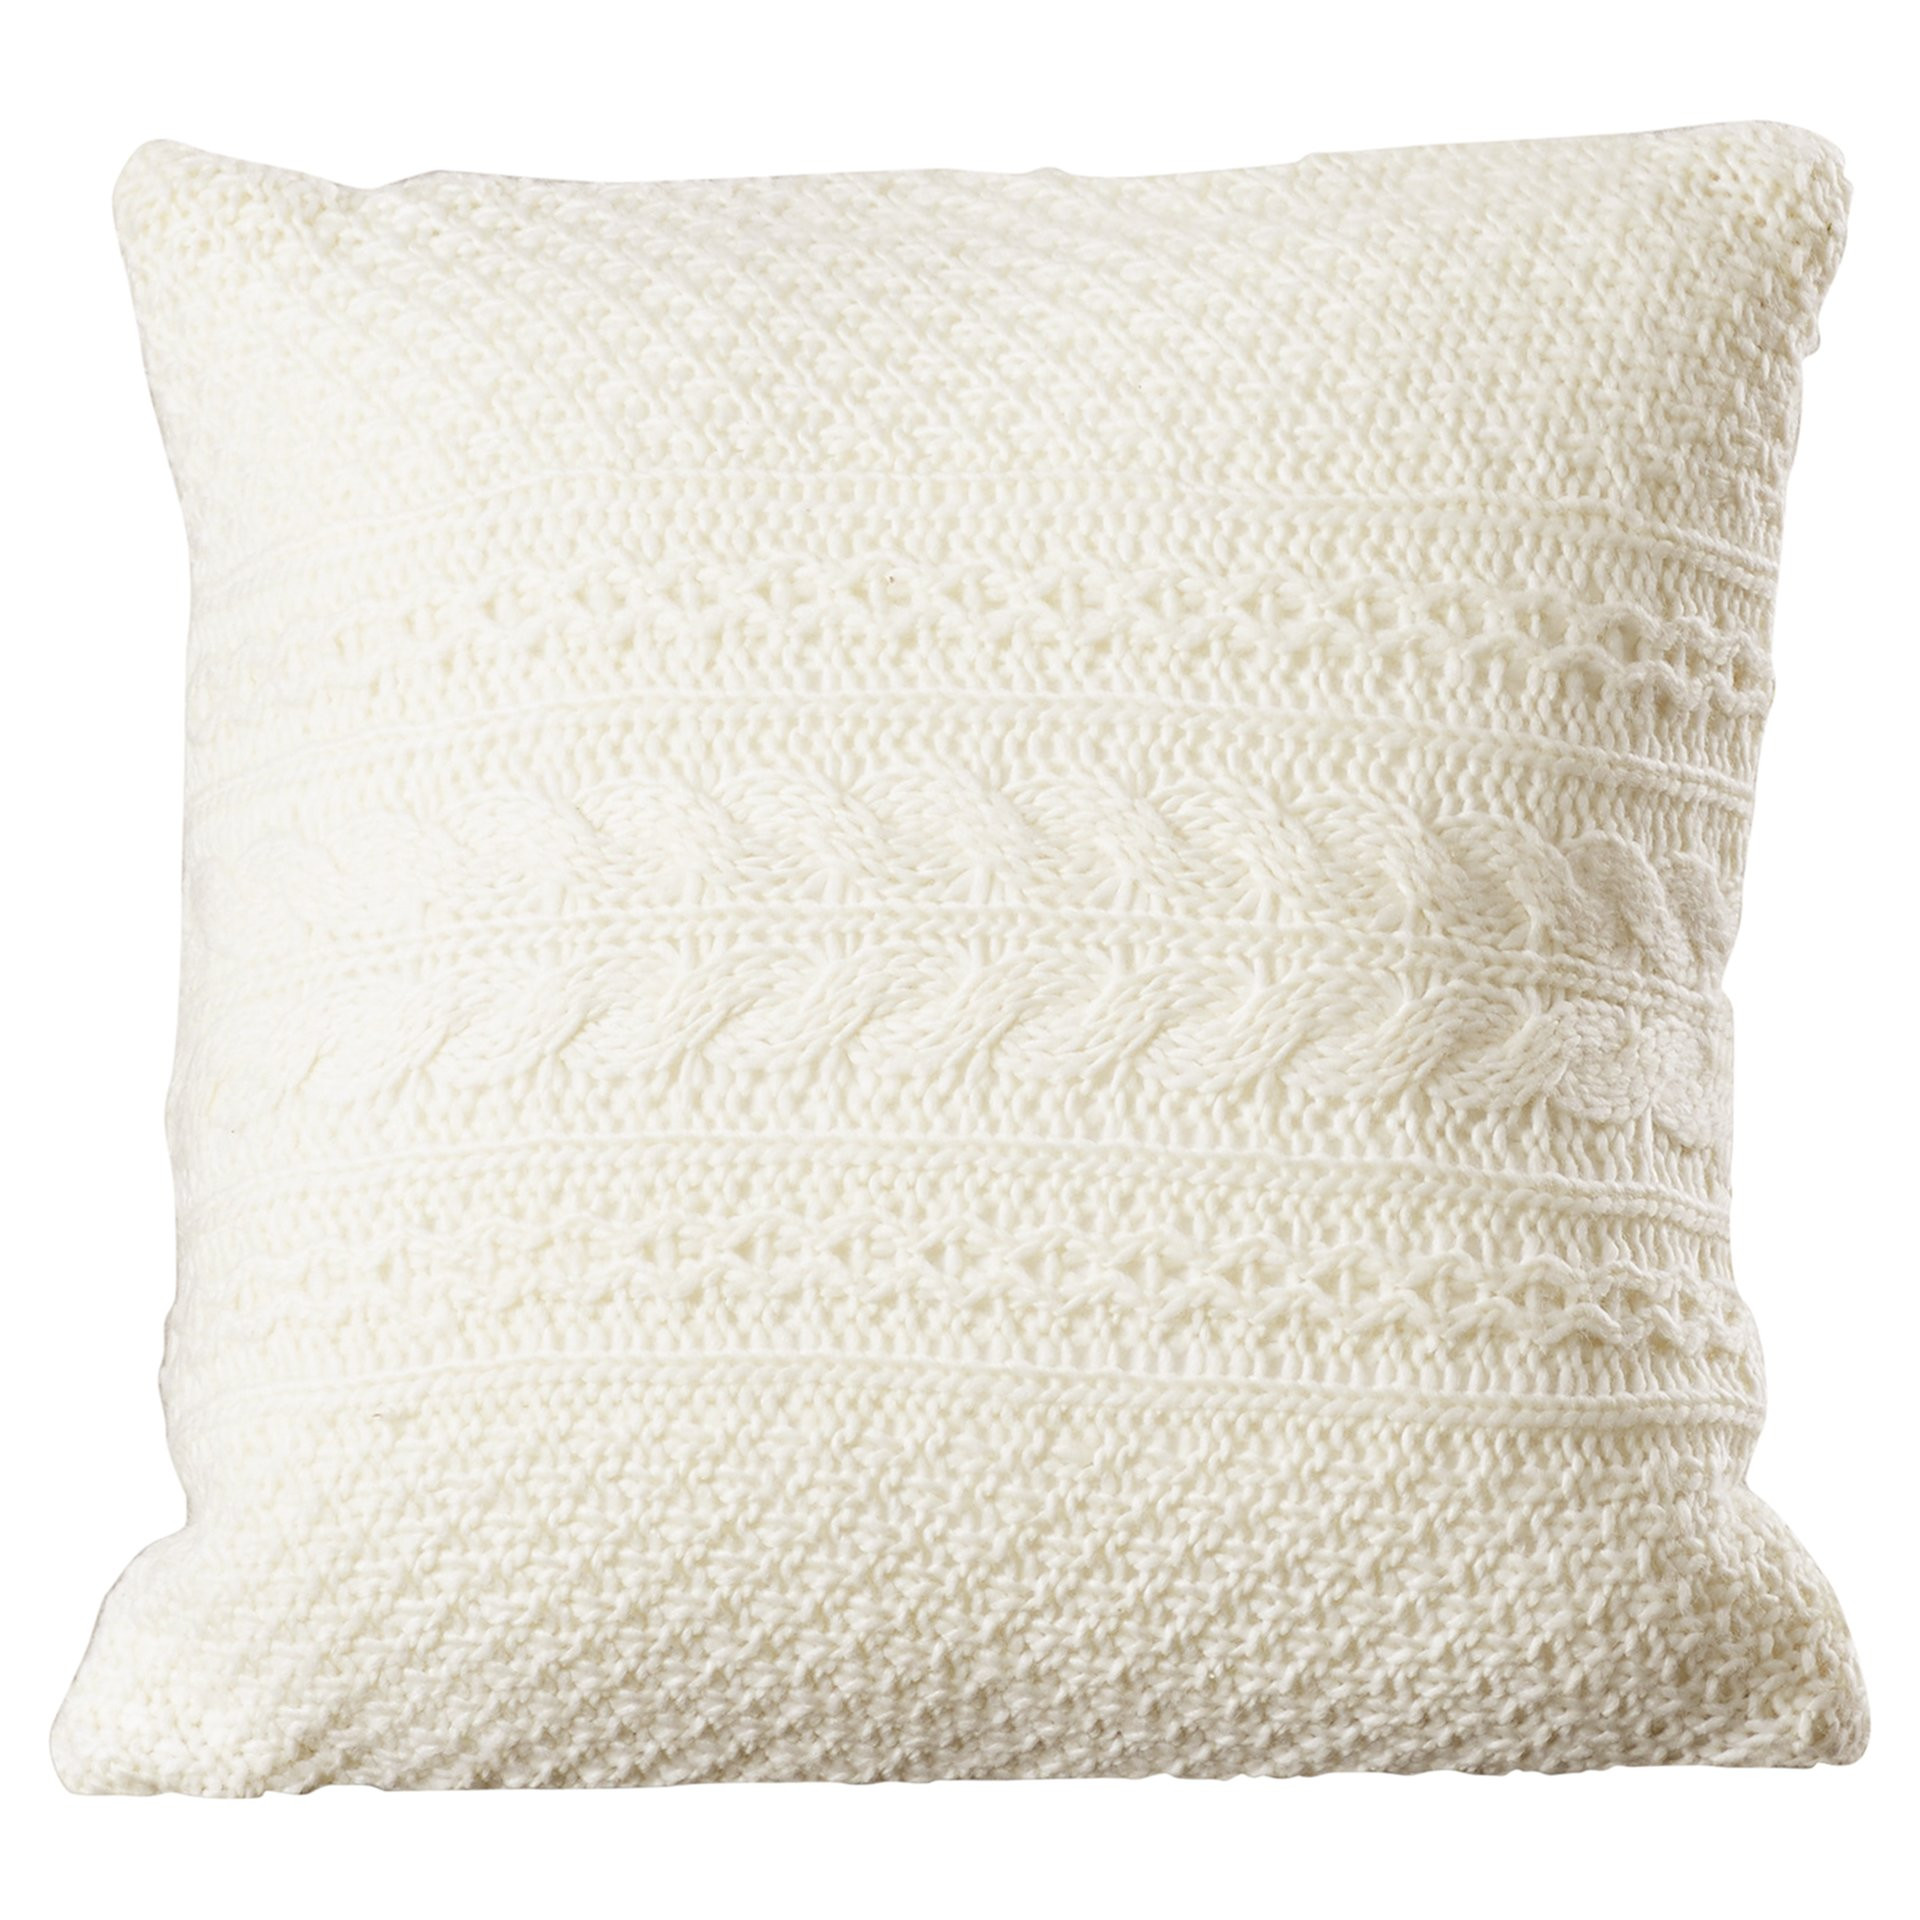 Lovely Three Posts Cable Knit Throw Pillow & Reviews Cable Knit Throw Pillow Of Great 48 Ideas Cable Knit Throw Pillow